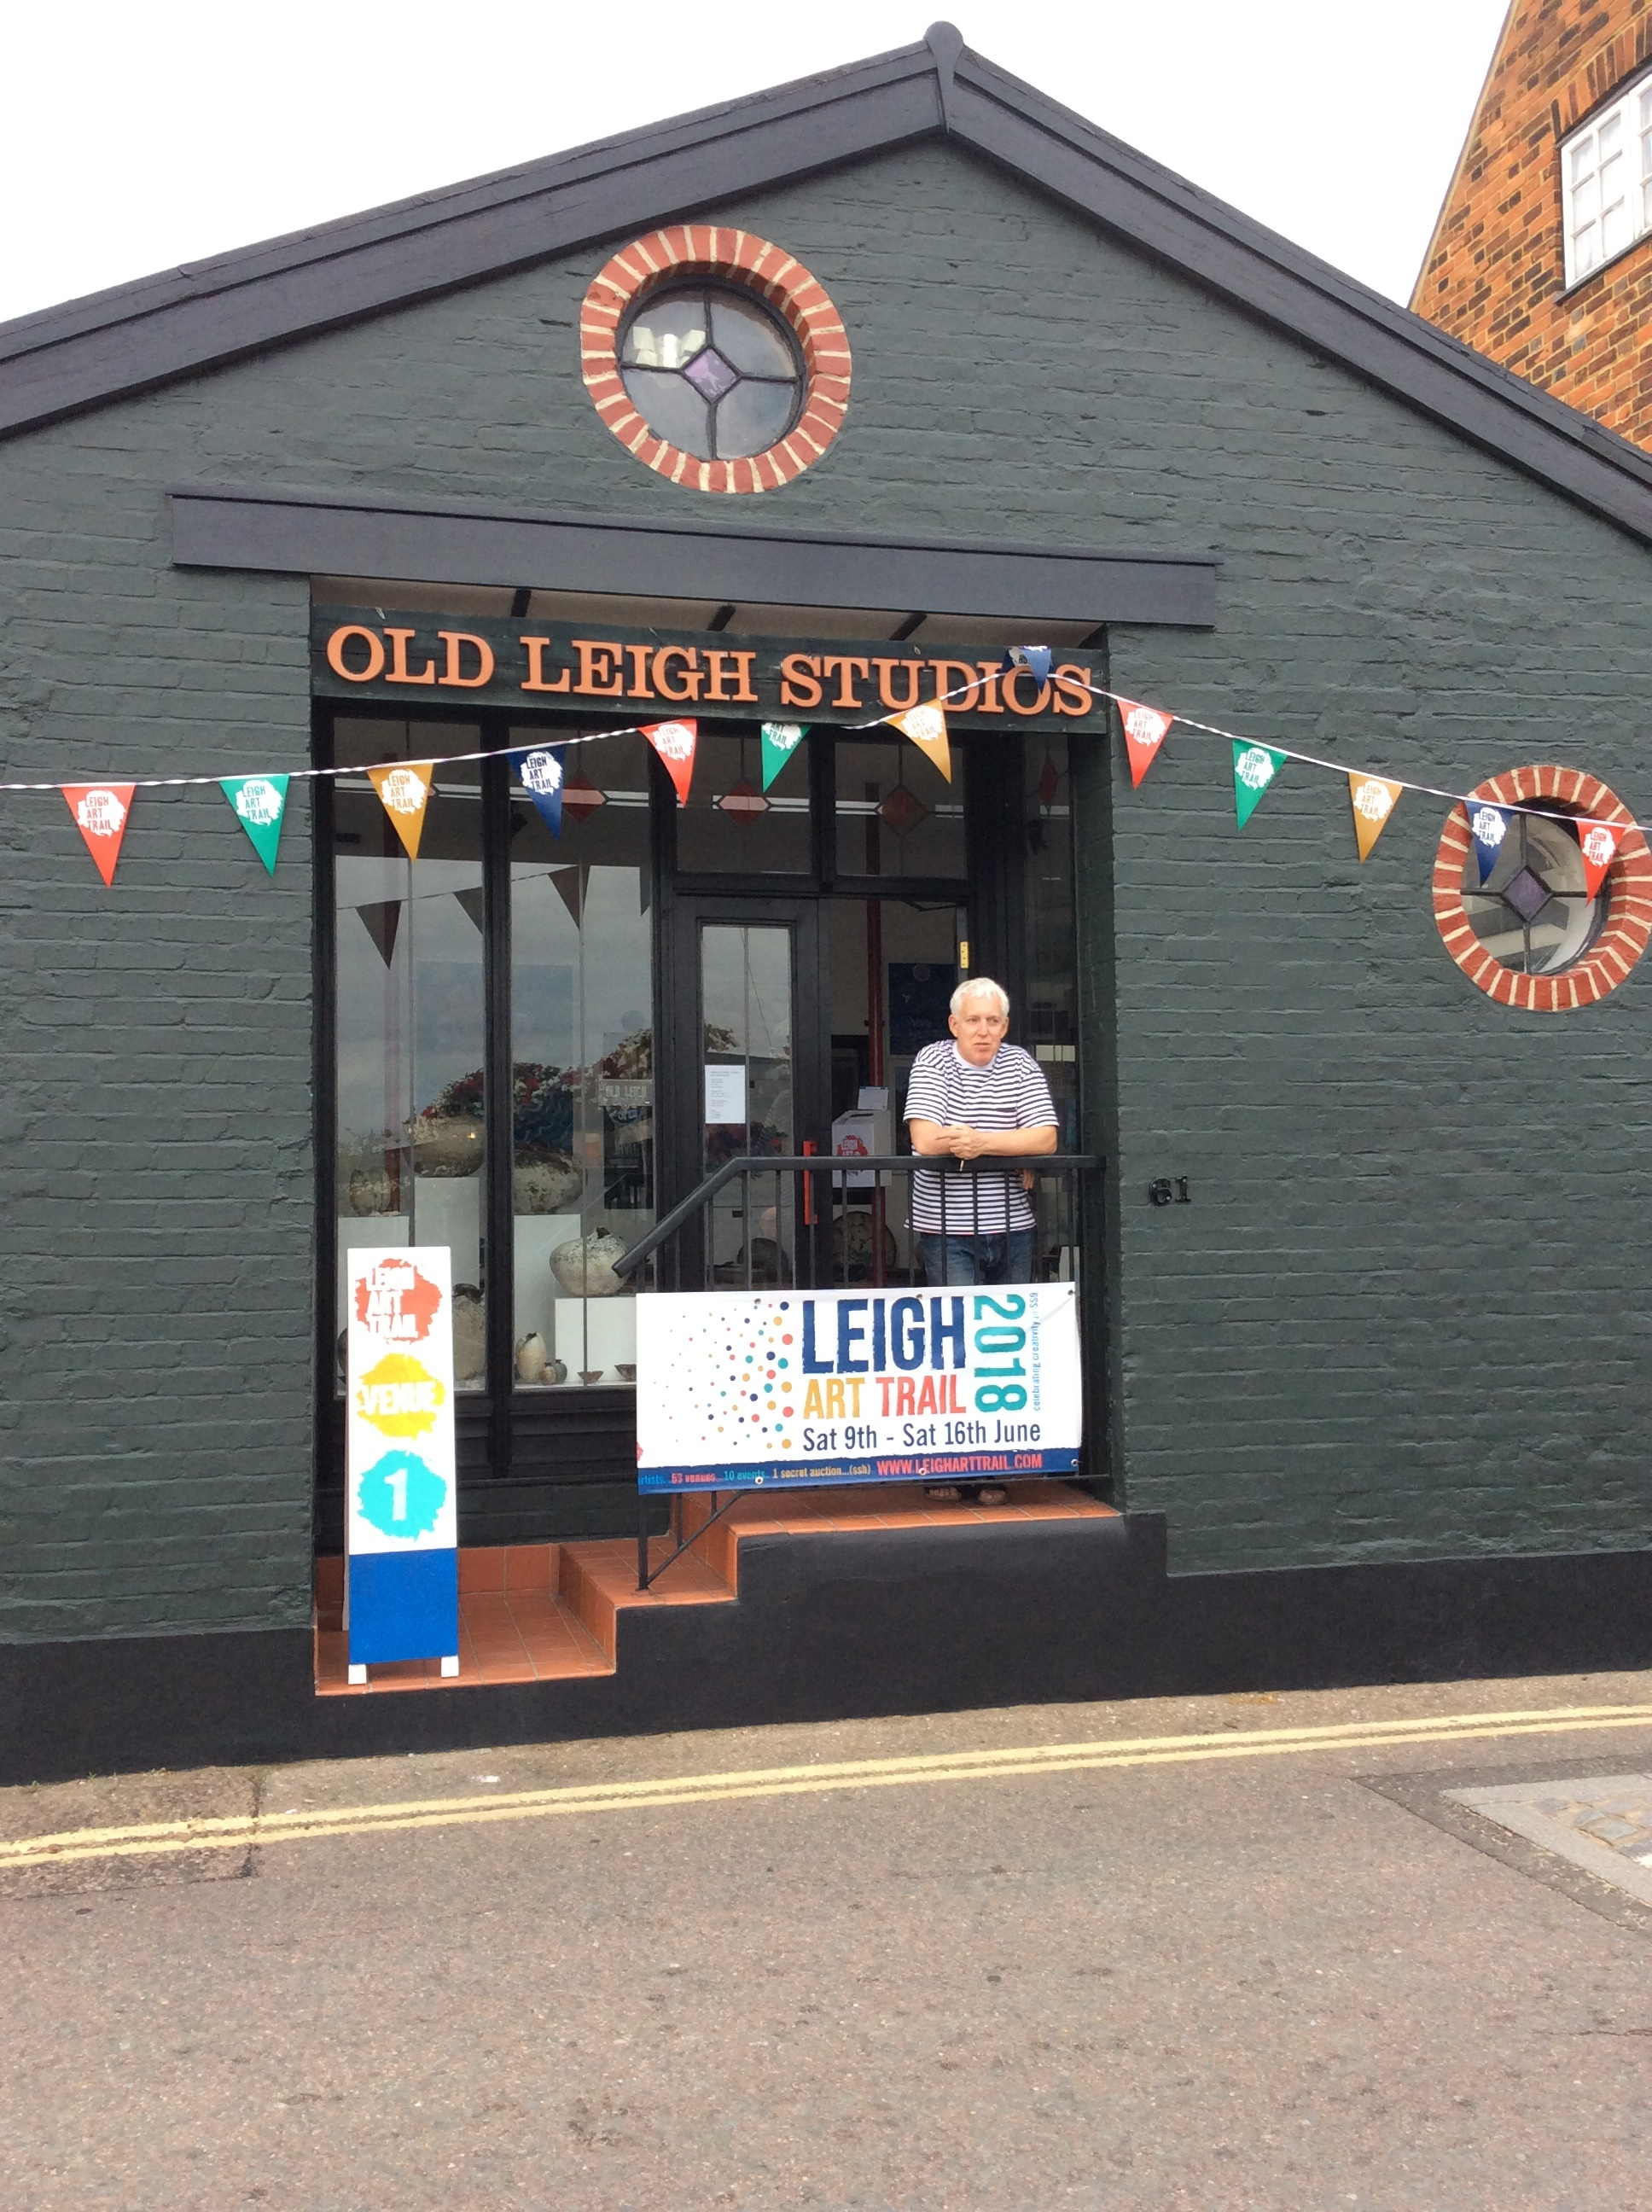 Old Leigh Studios - 61 High Street, Old Leigh, Essex SS9 2EP